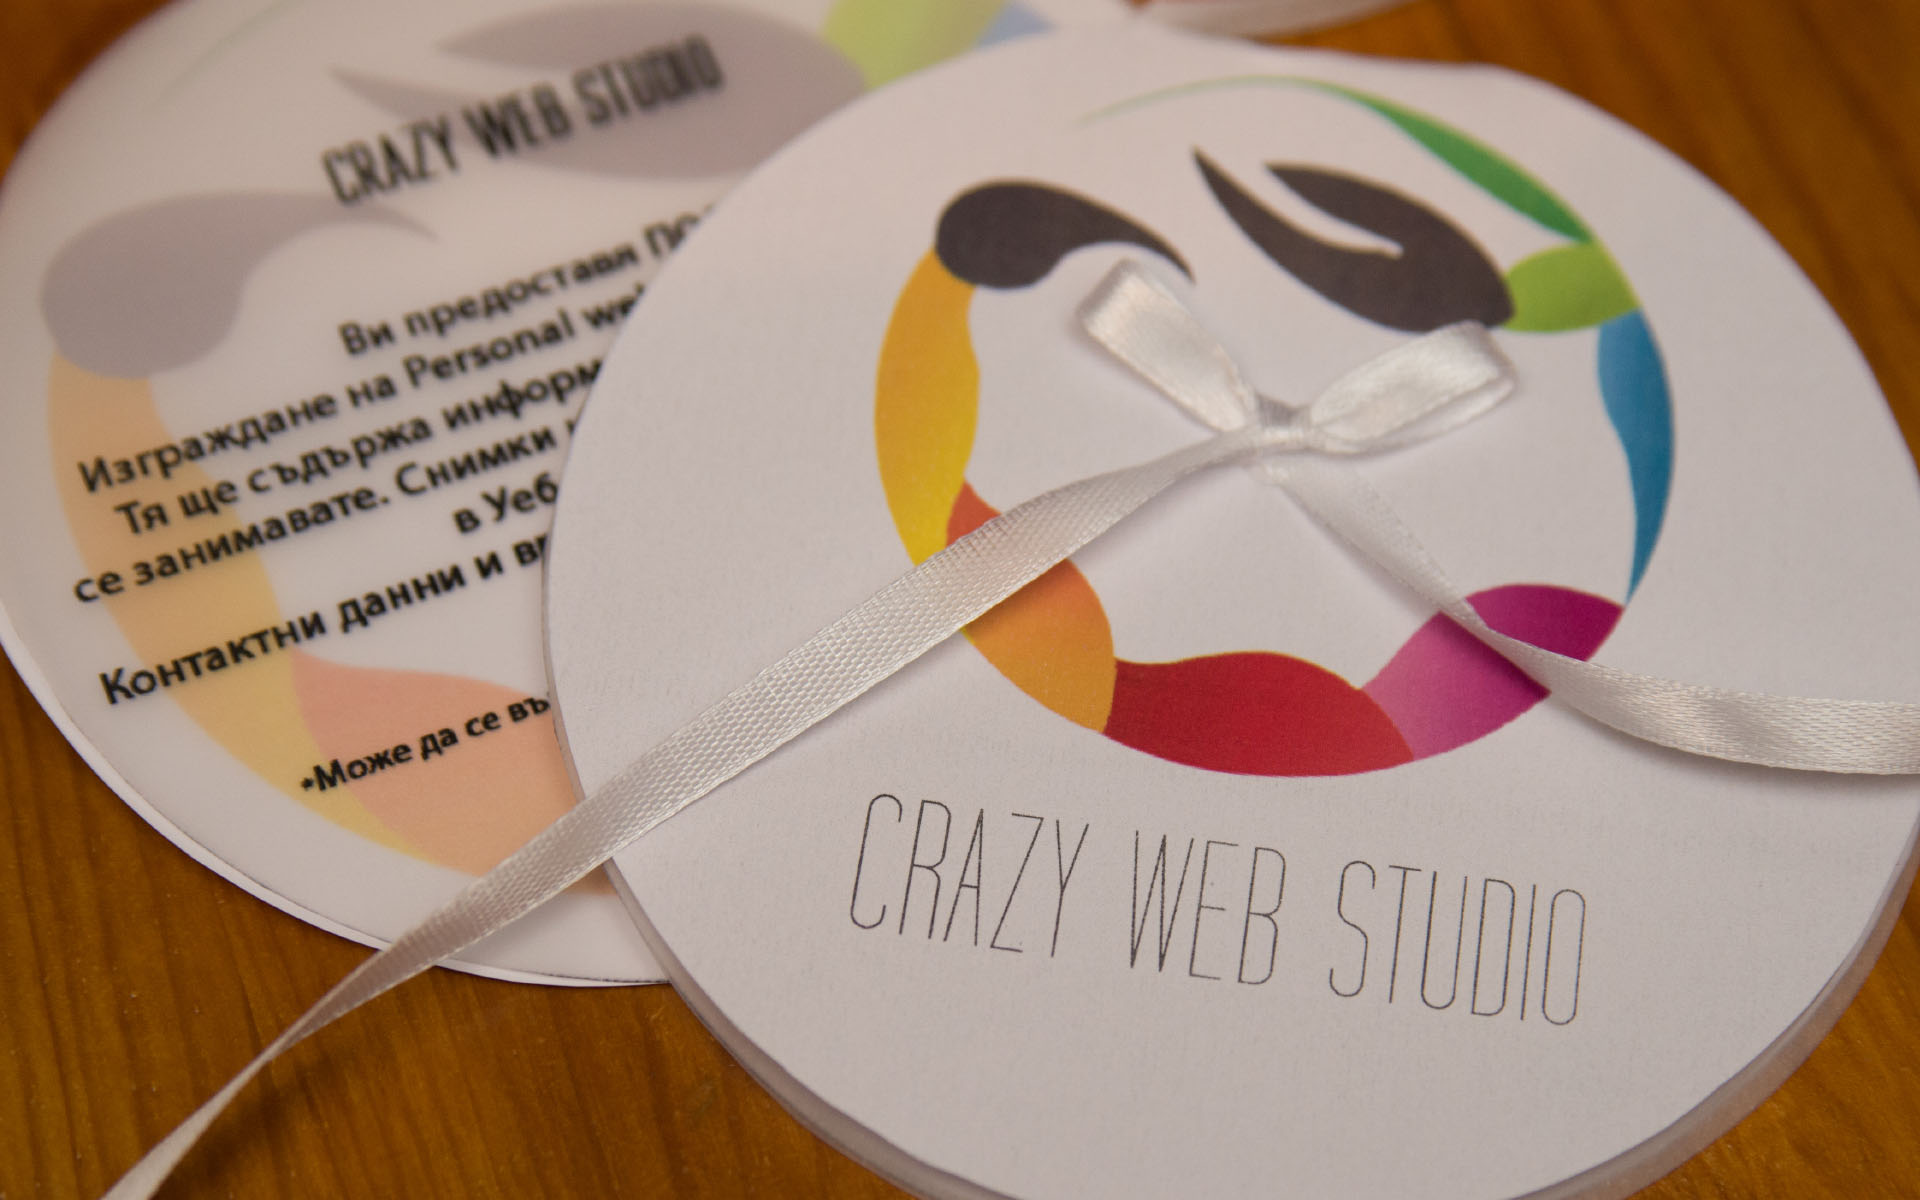 Crazy Web Studio gave three awards on a Marketing event.